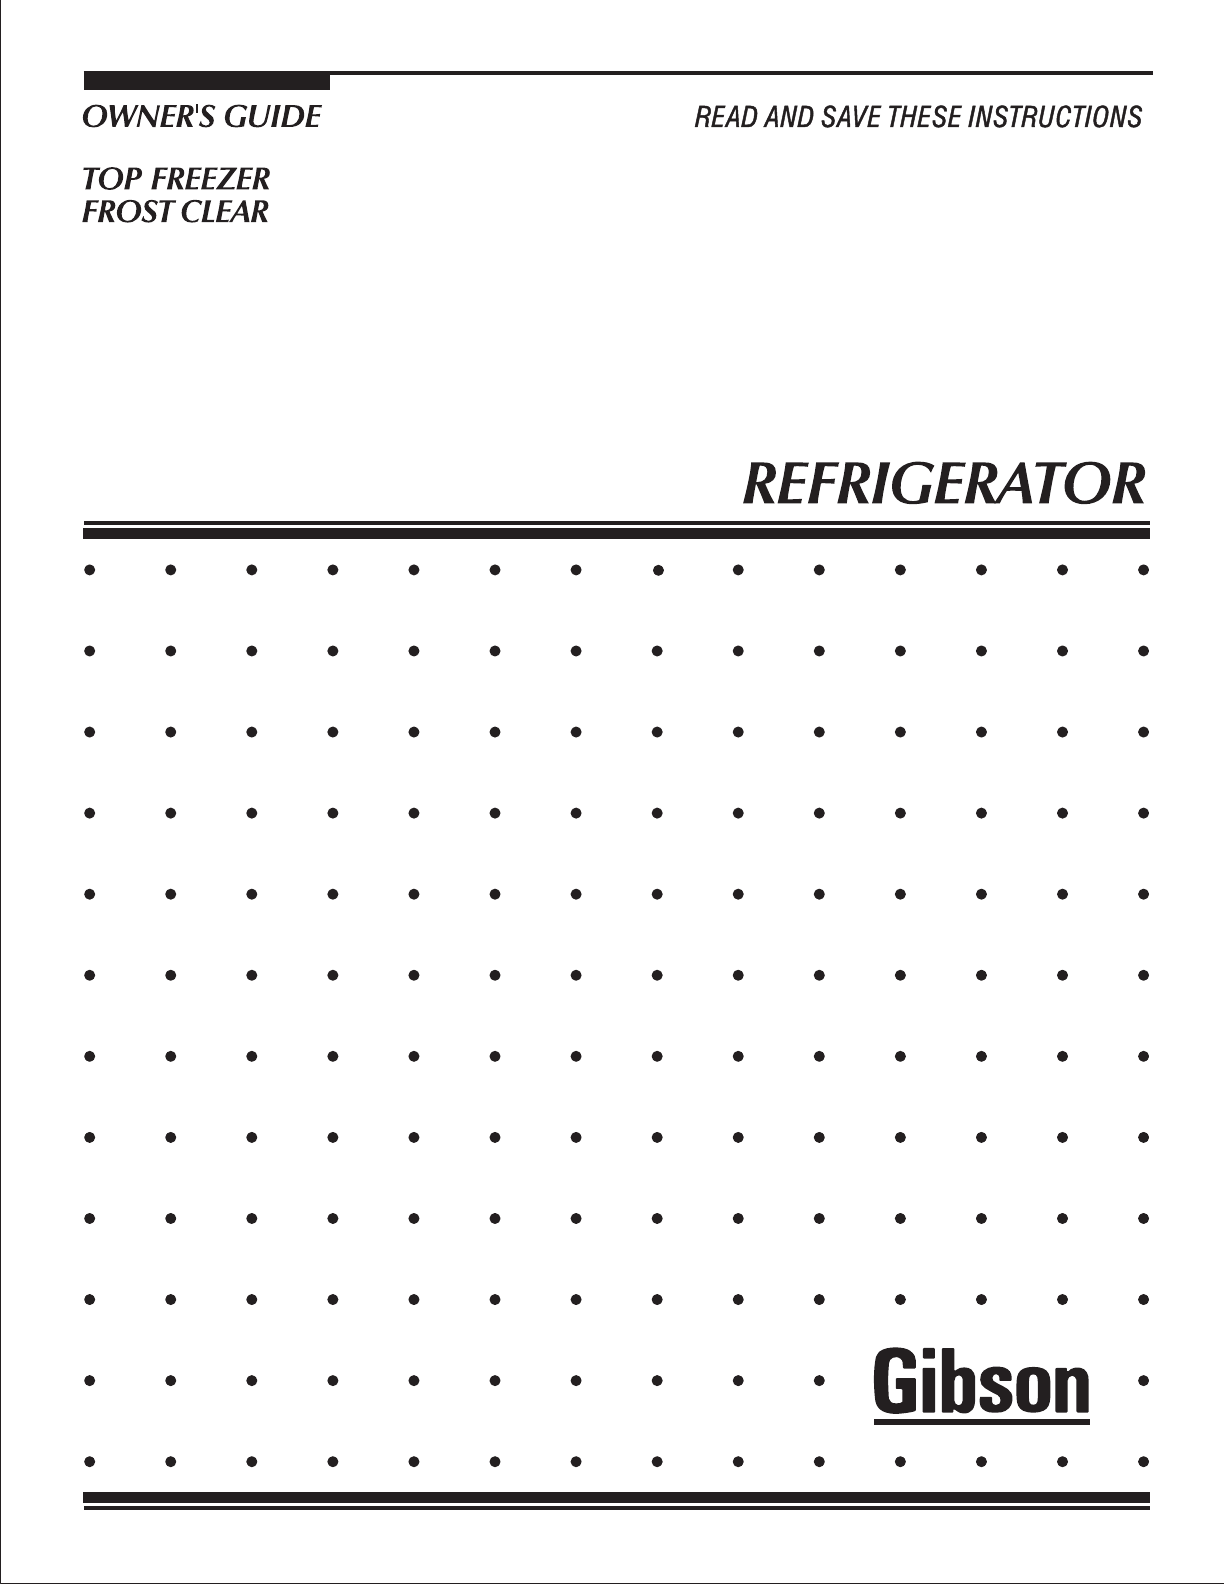 electrolux gibson refrigerator top freezer frost clear rh kitchen manualsonline com Gibson Dryer Who Makes Gibson Appliances